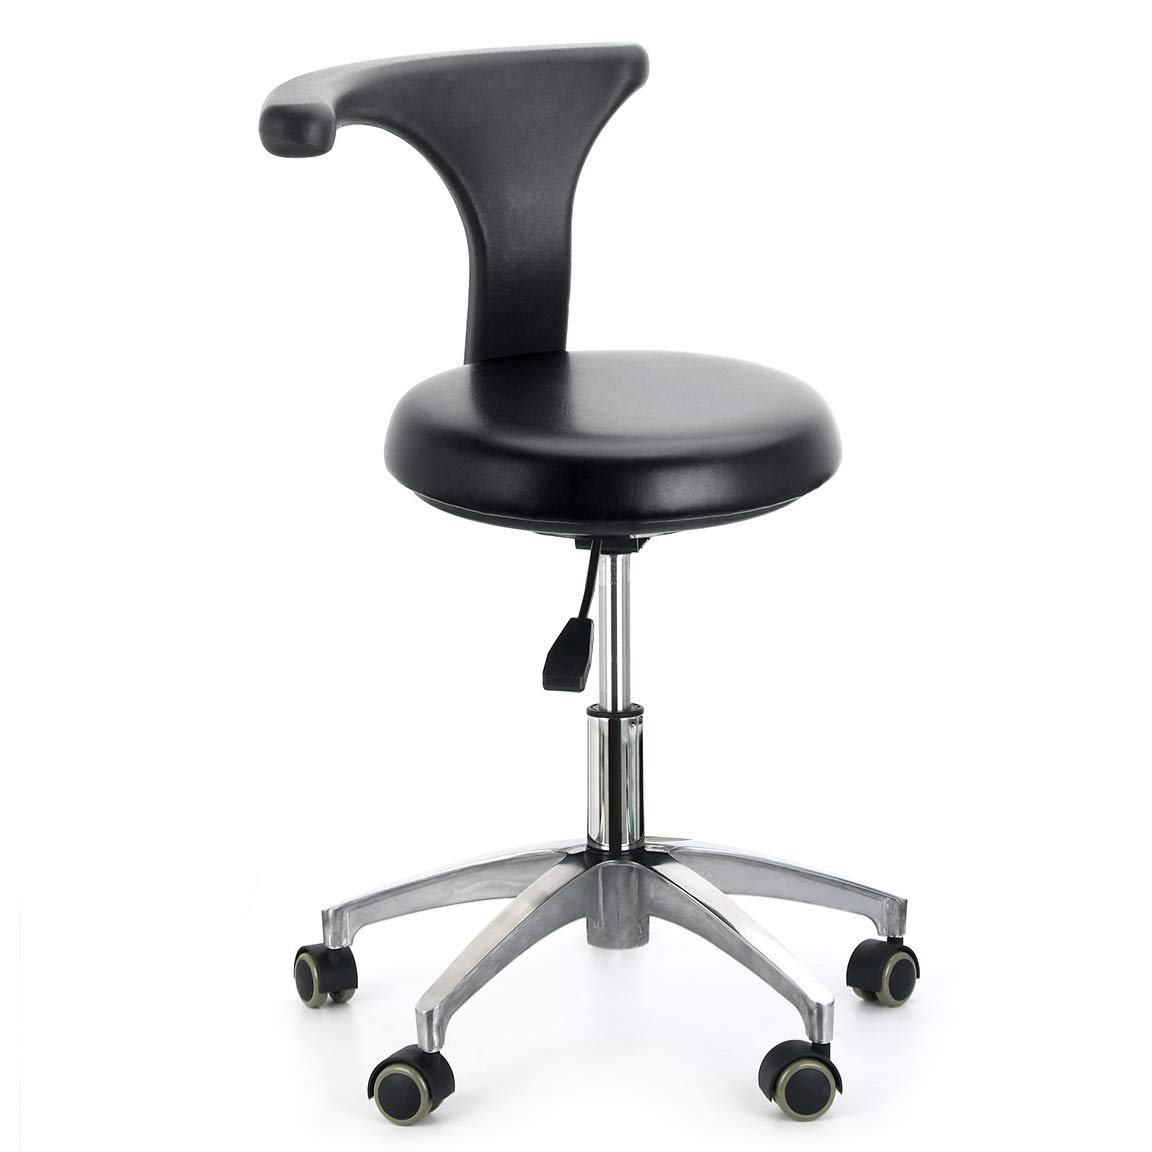 AZDENT Ergonomic Medical Doctor Stool Dentist Swivel Rolling Chair with Back Foot Rest Adjustable Dentist Stool Dental Clinic Spa Massage Salon by AZDENT